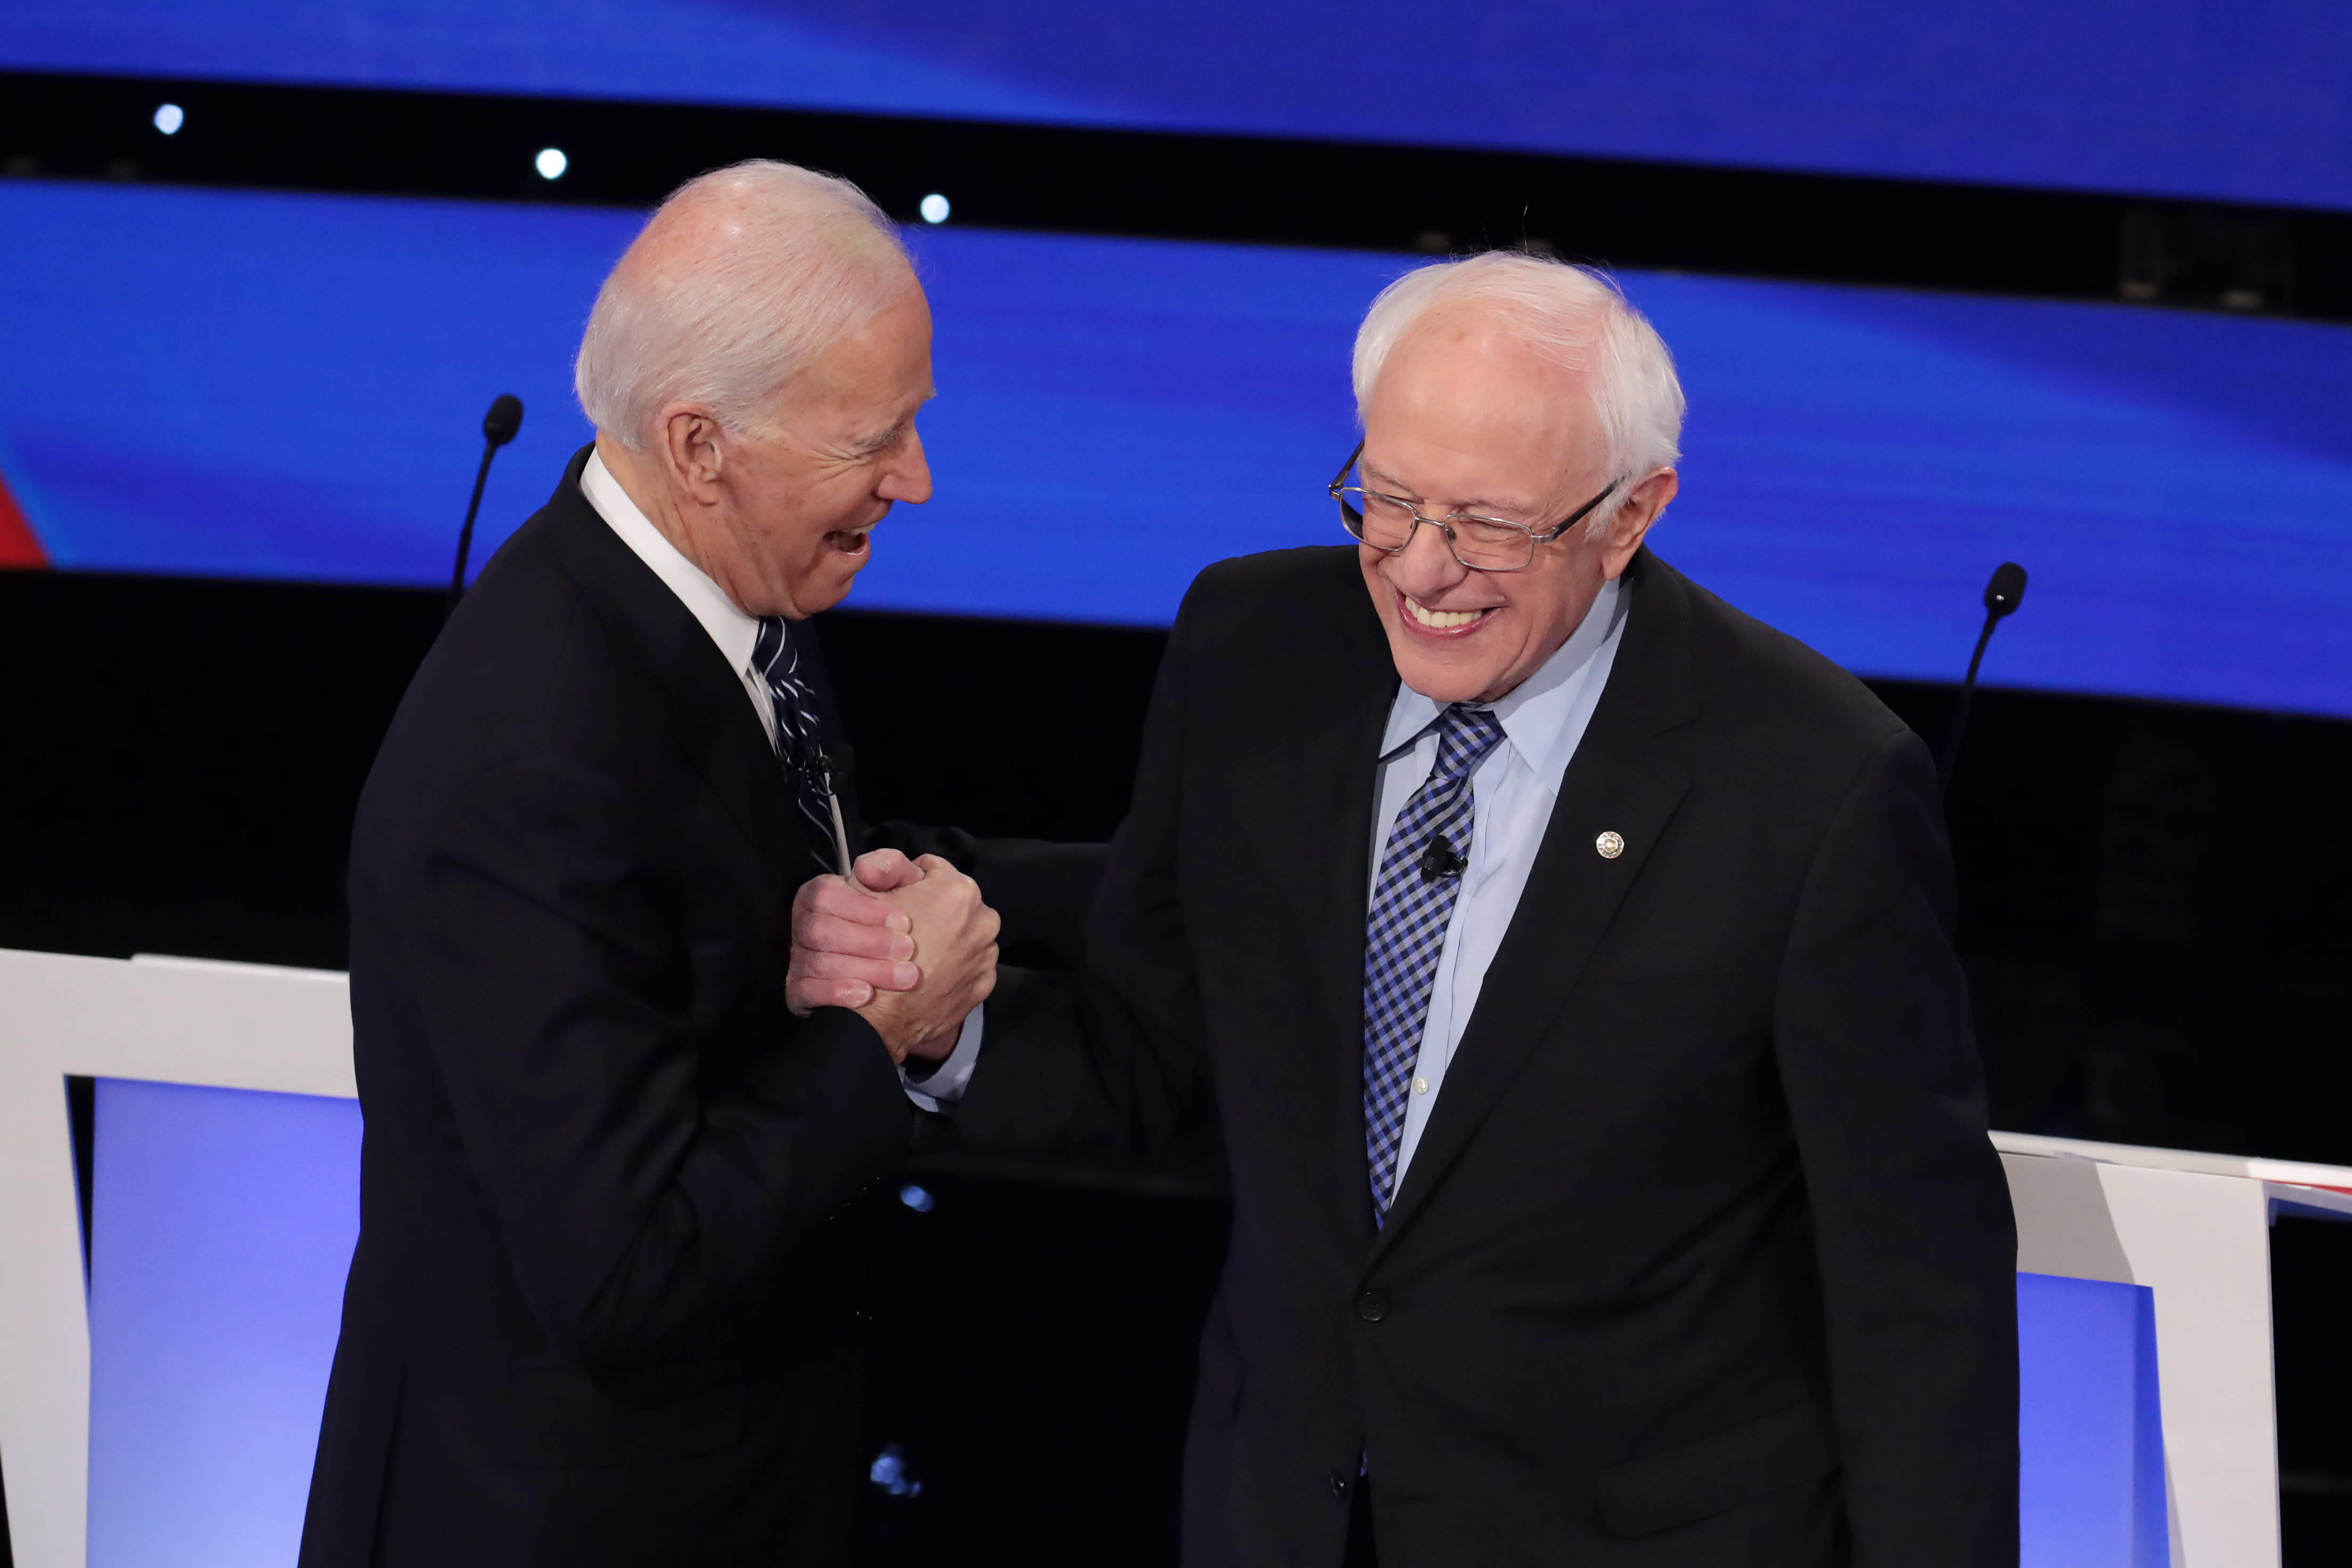 Both Biden and Sanders want to boost Social Security benefits. So why are they fighting on the issue?